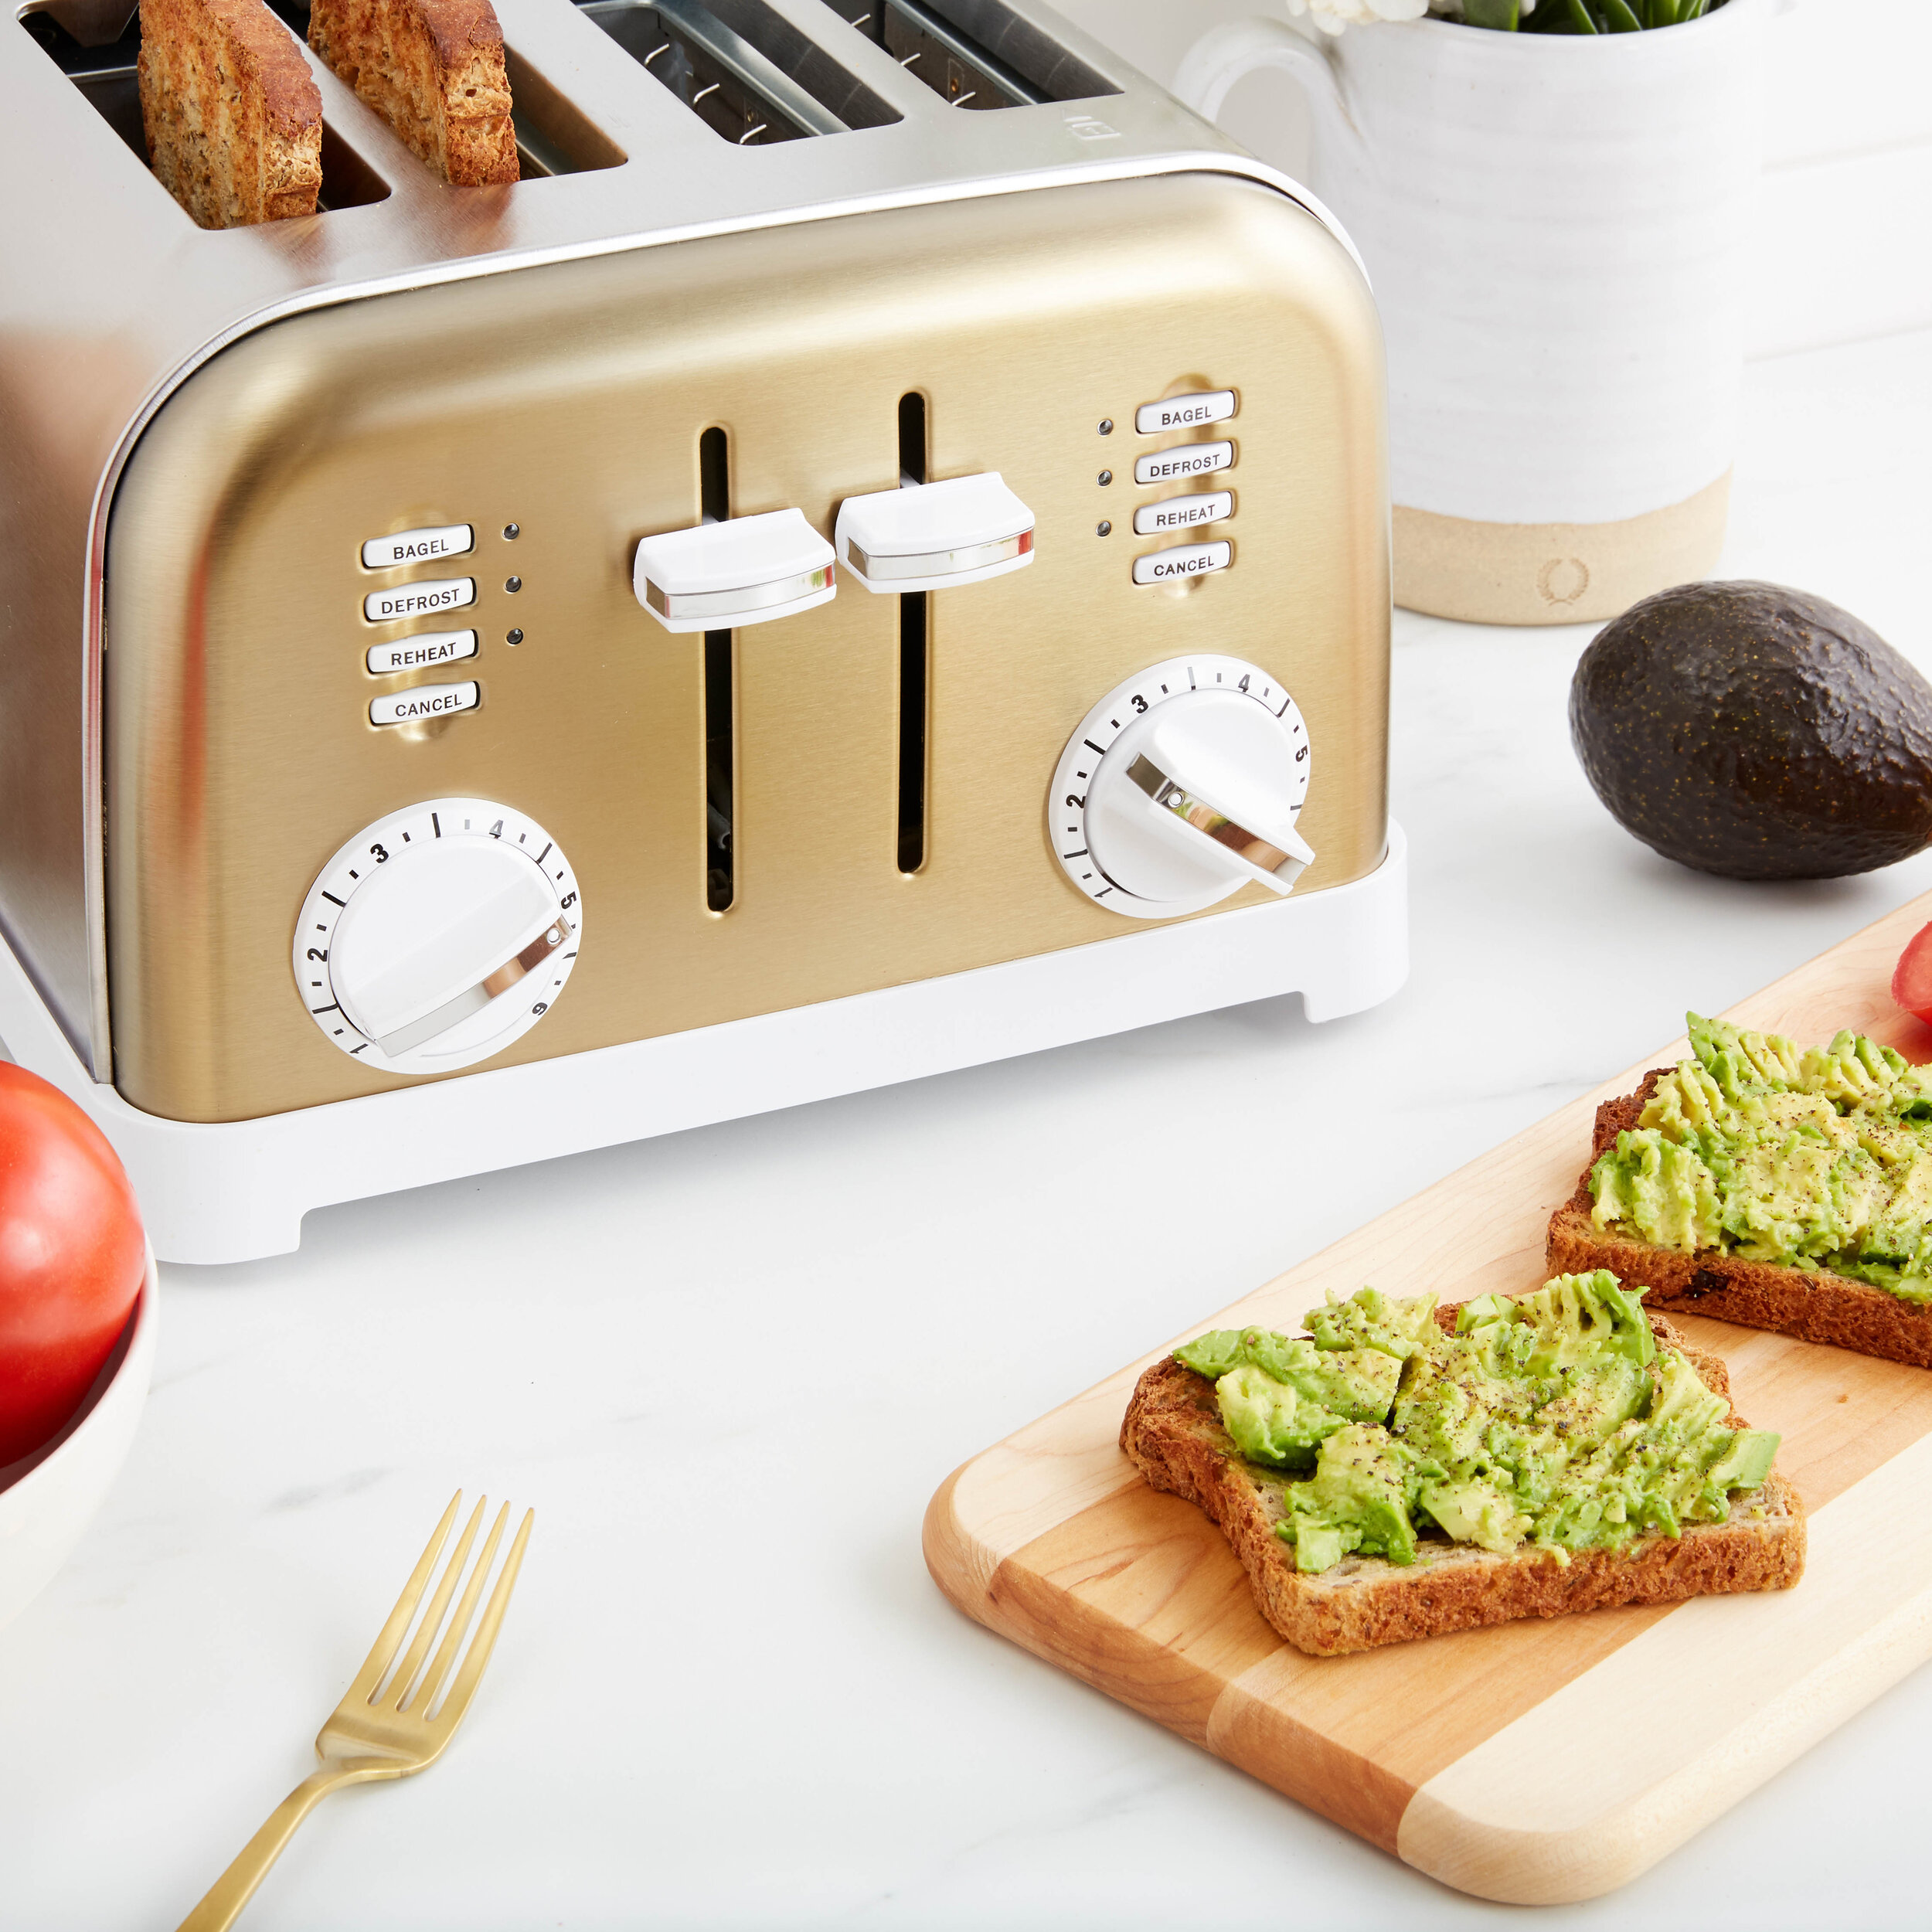 Cuisinart for Zola Product Imagery 2019